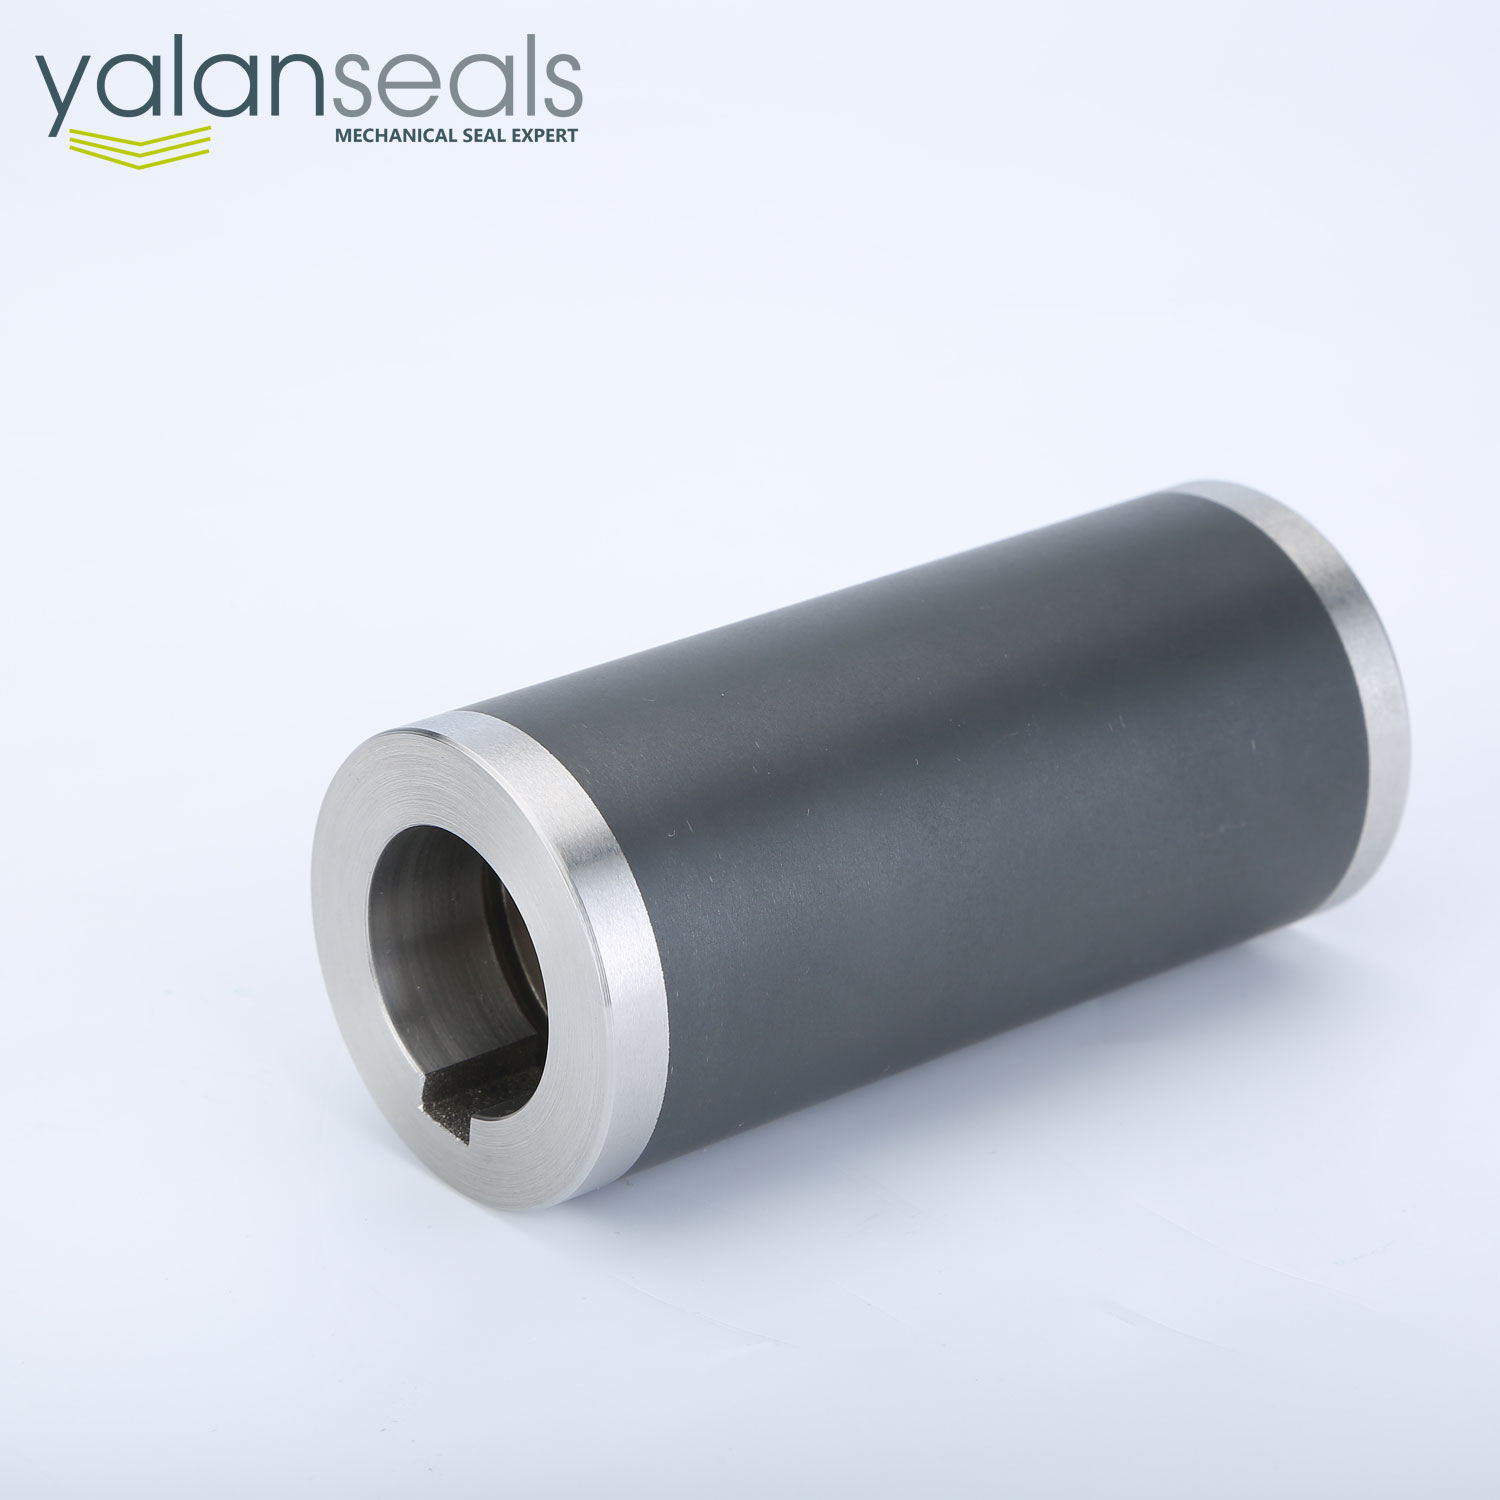 Stainless Steel Core with Ceramic Coating Shaft Sleeve